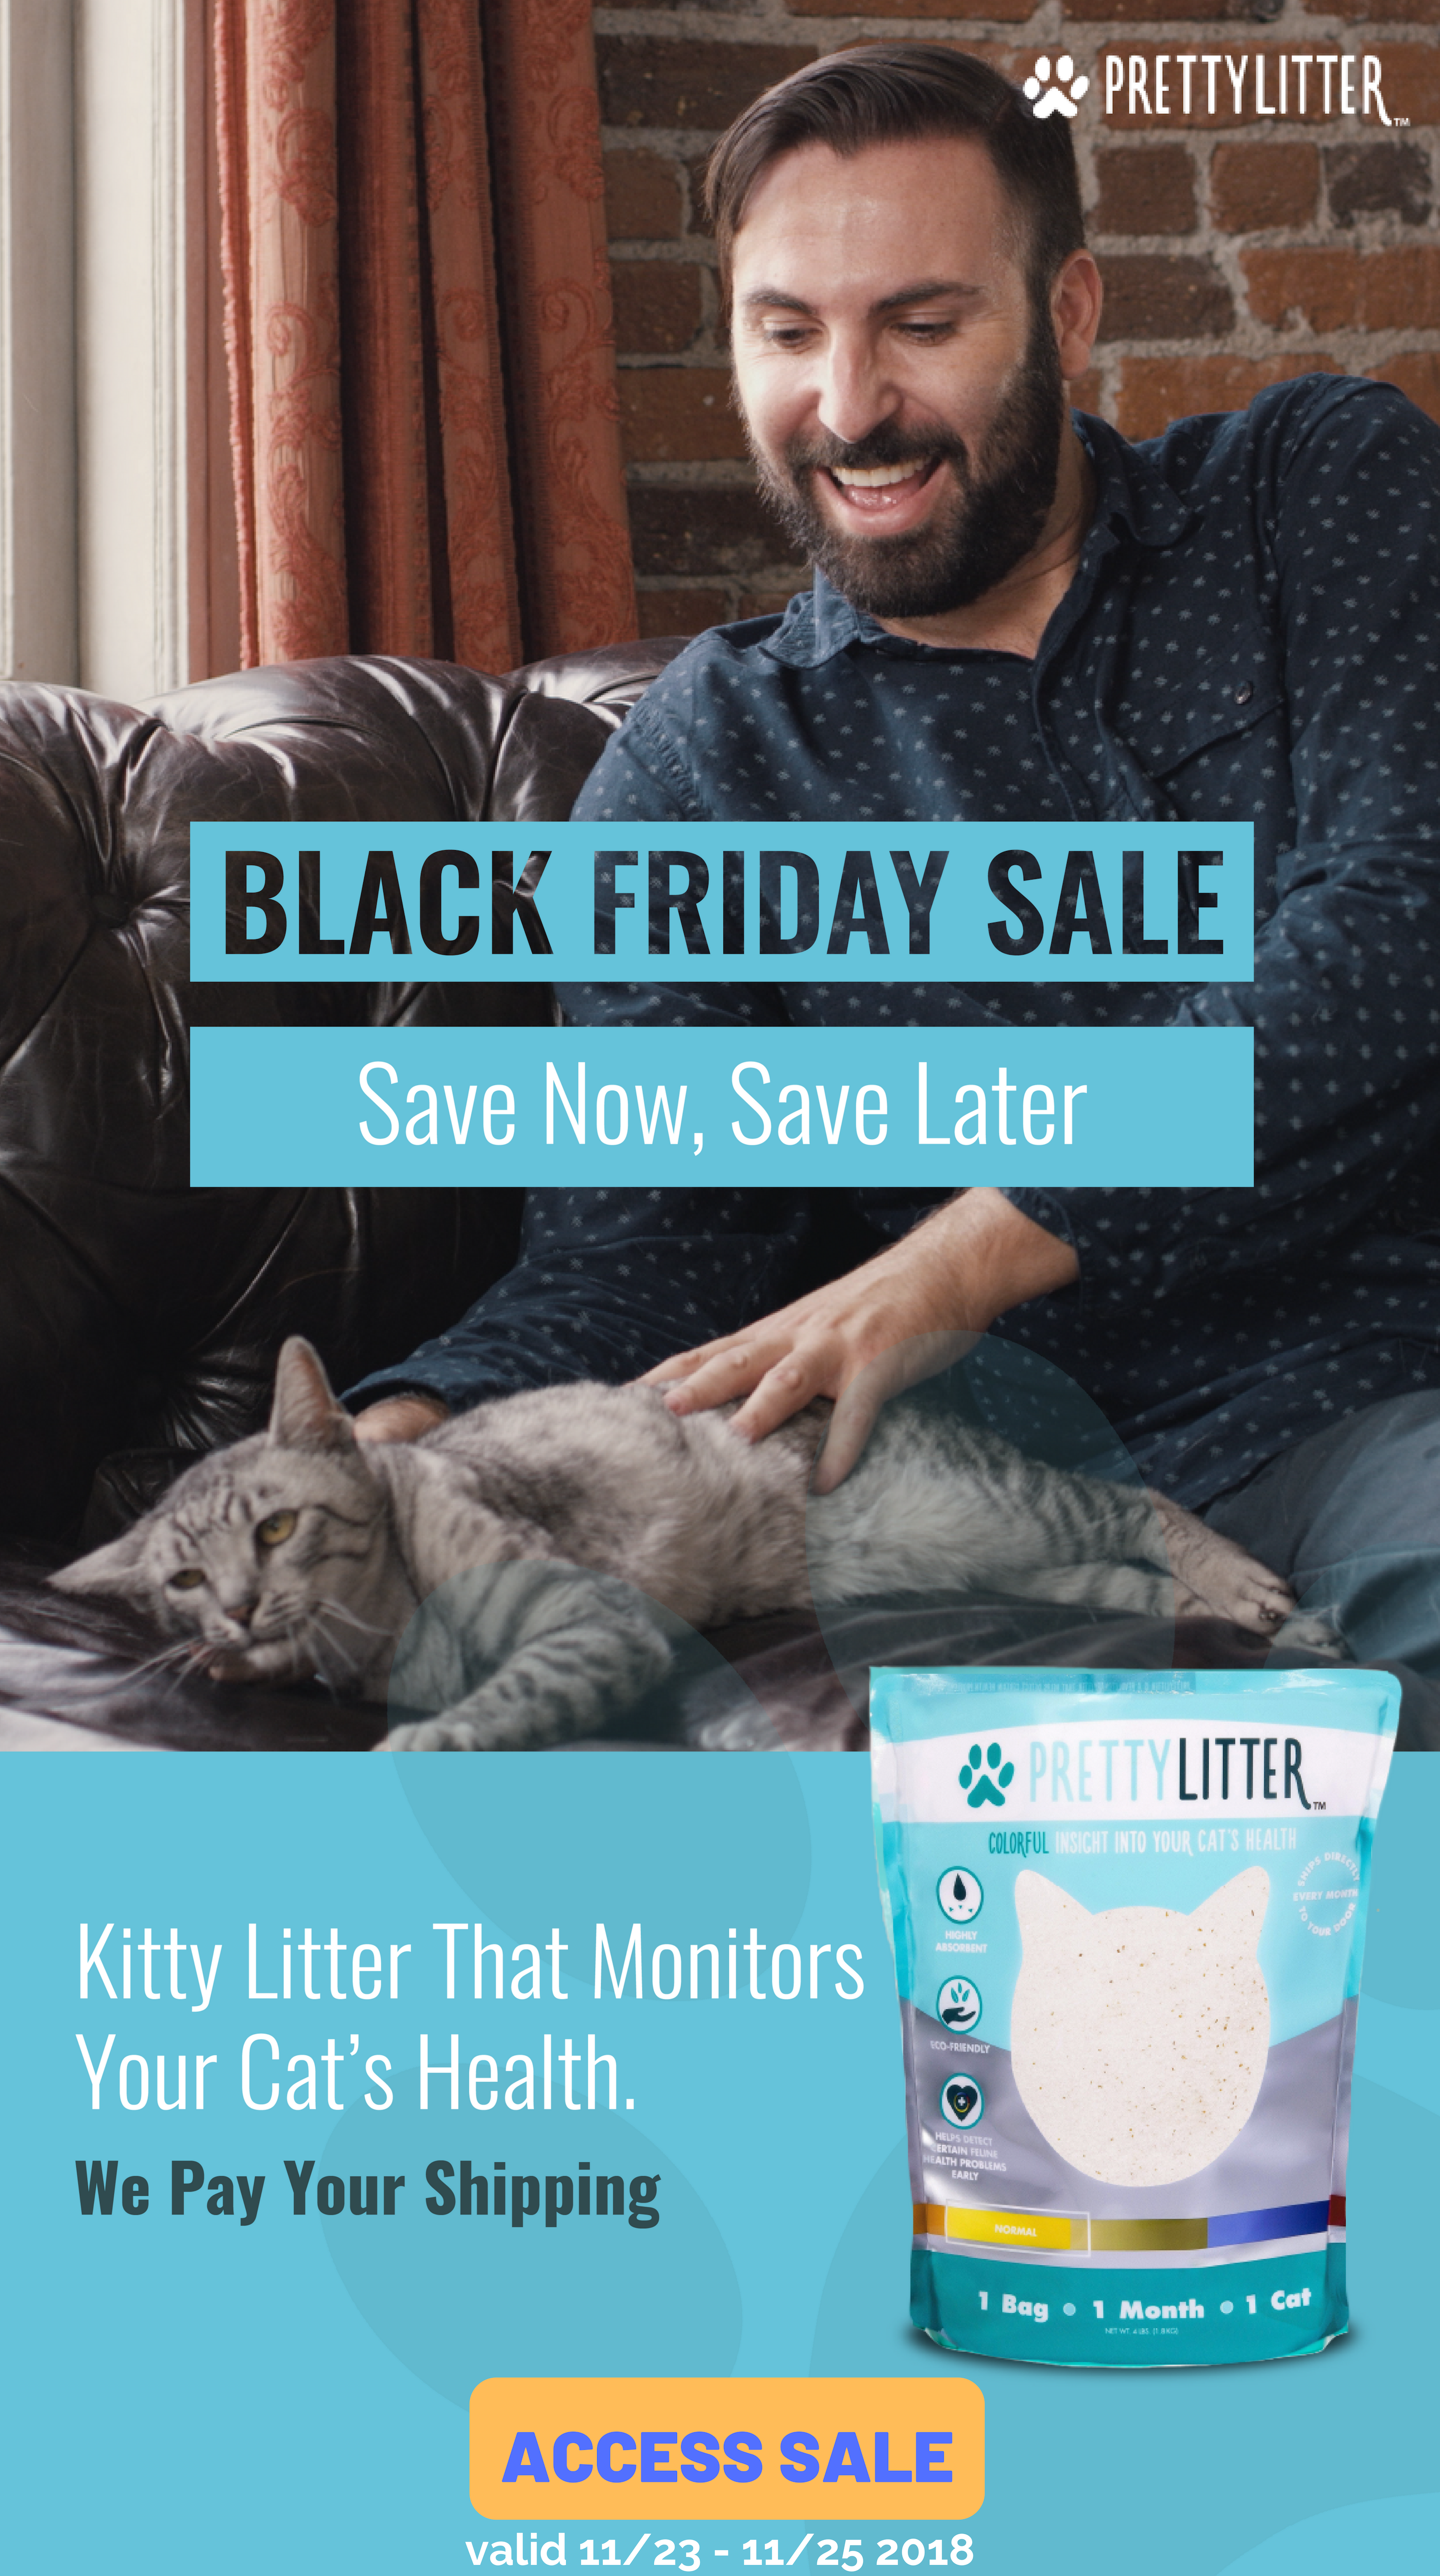 Pretty Litter's 2018 Black Friday Sale! High quality cat